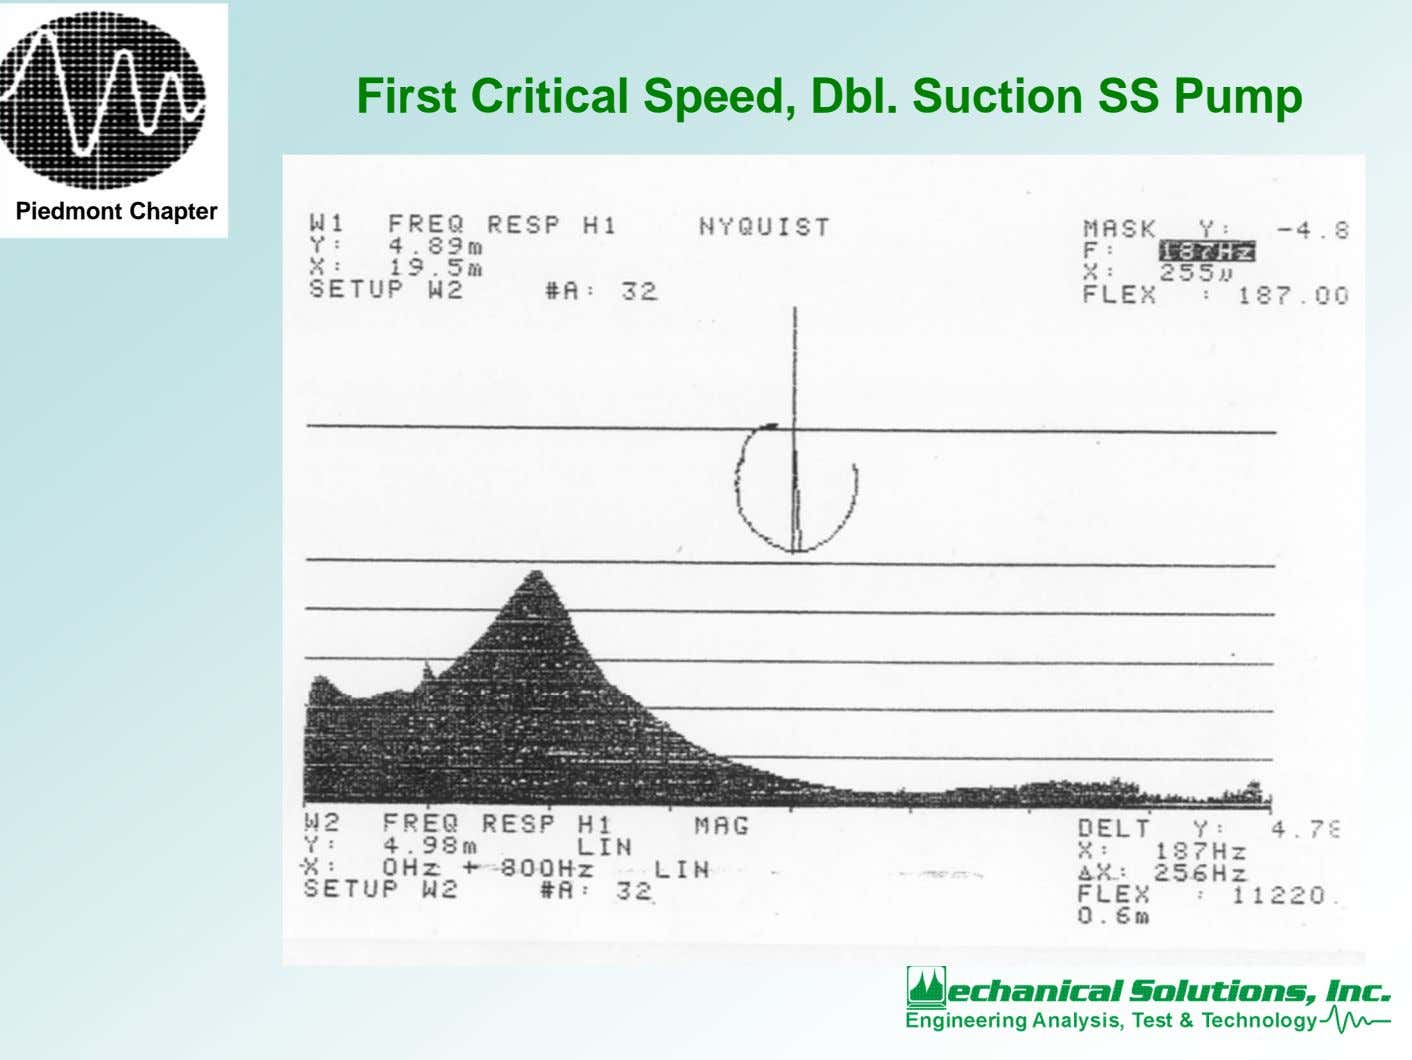 First Critical Speed, Dbl. Suction SS Pump Piedmont Chapter